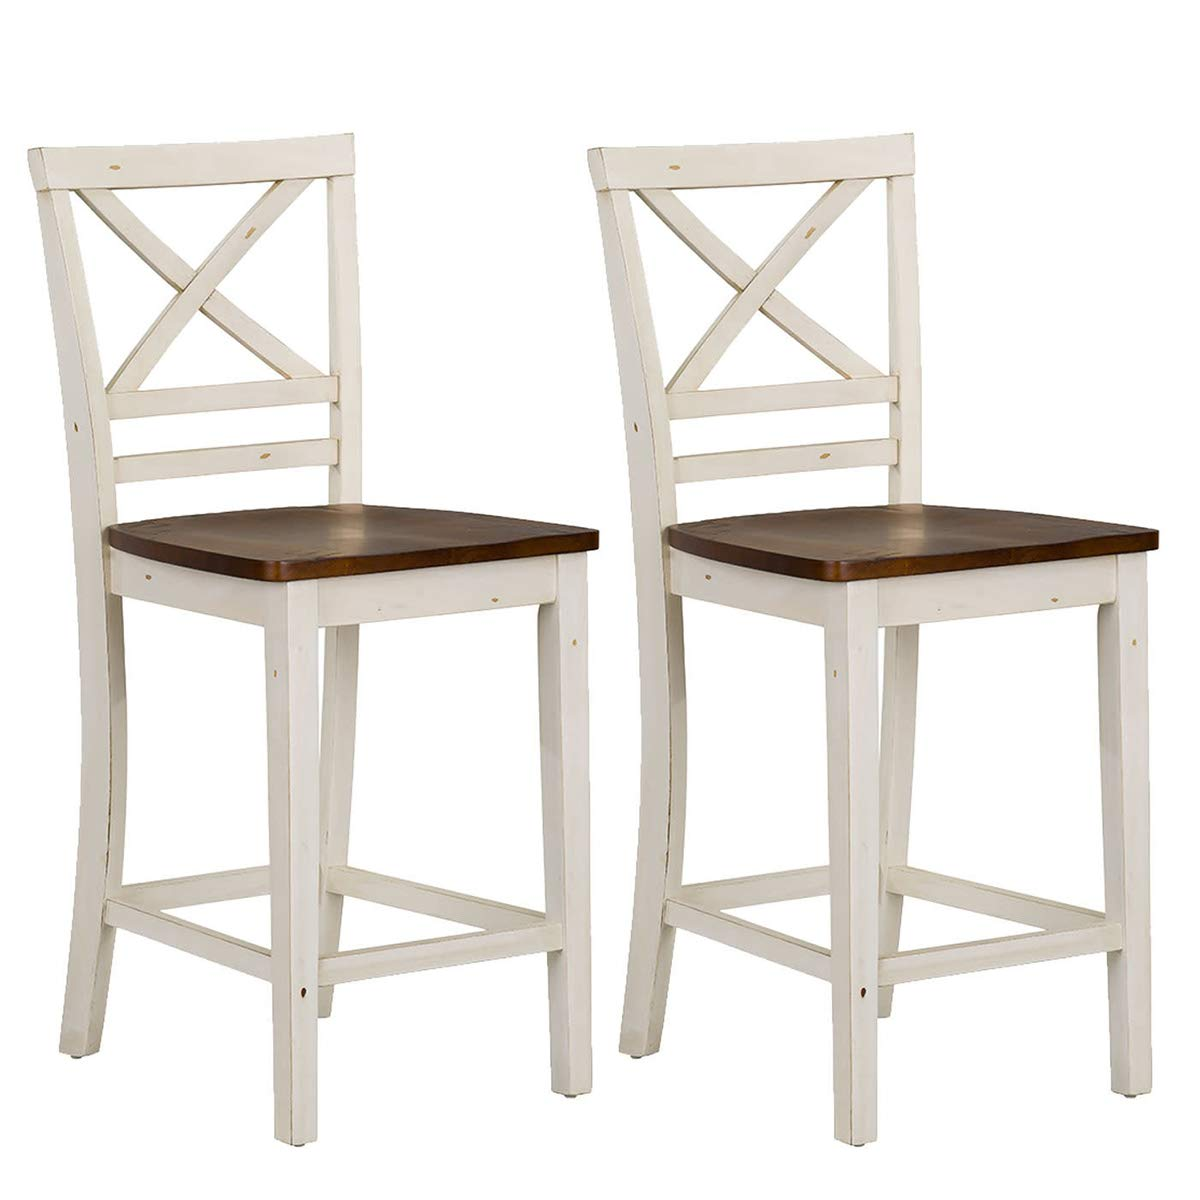 Standard Dining Chair Seat Height – Chair Pads & Cushions